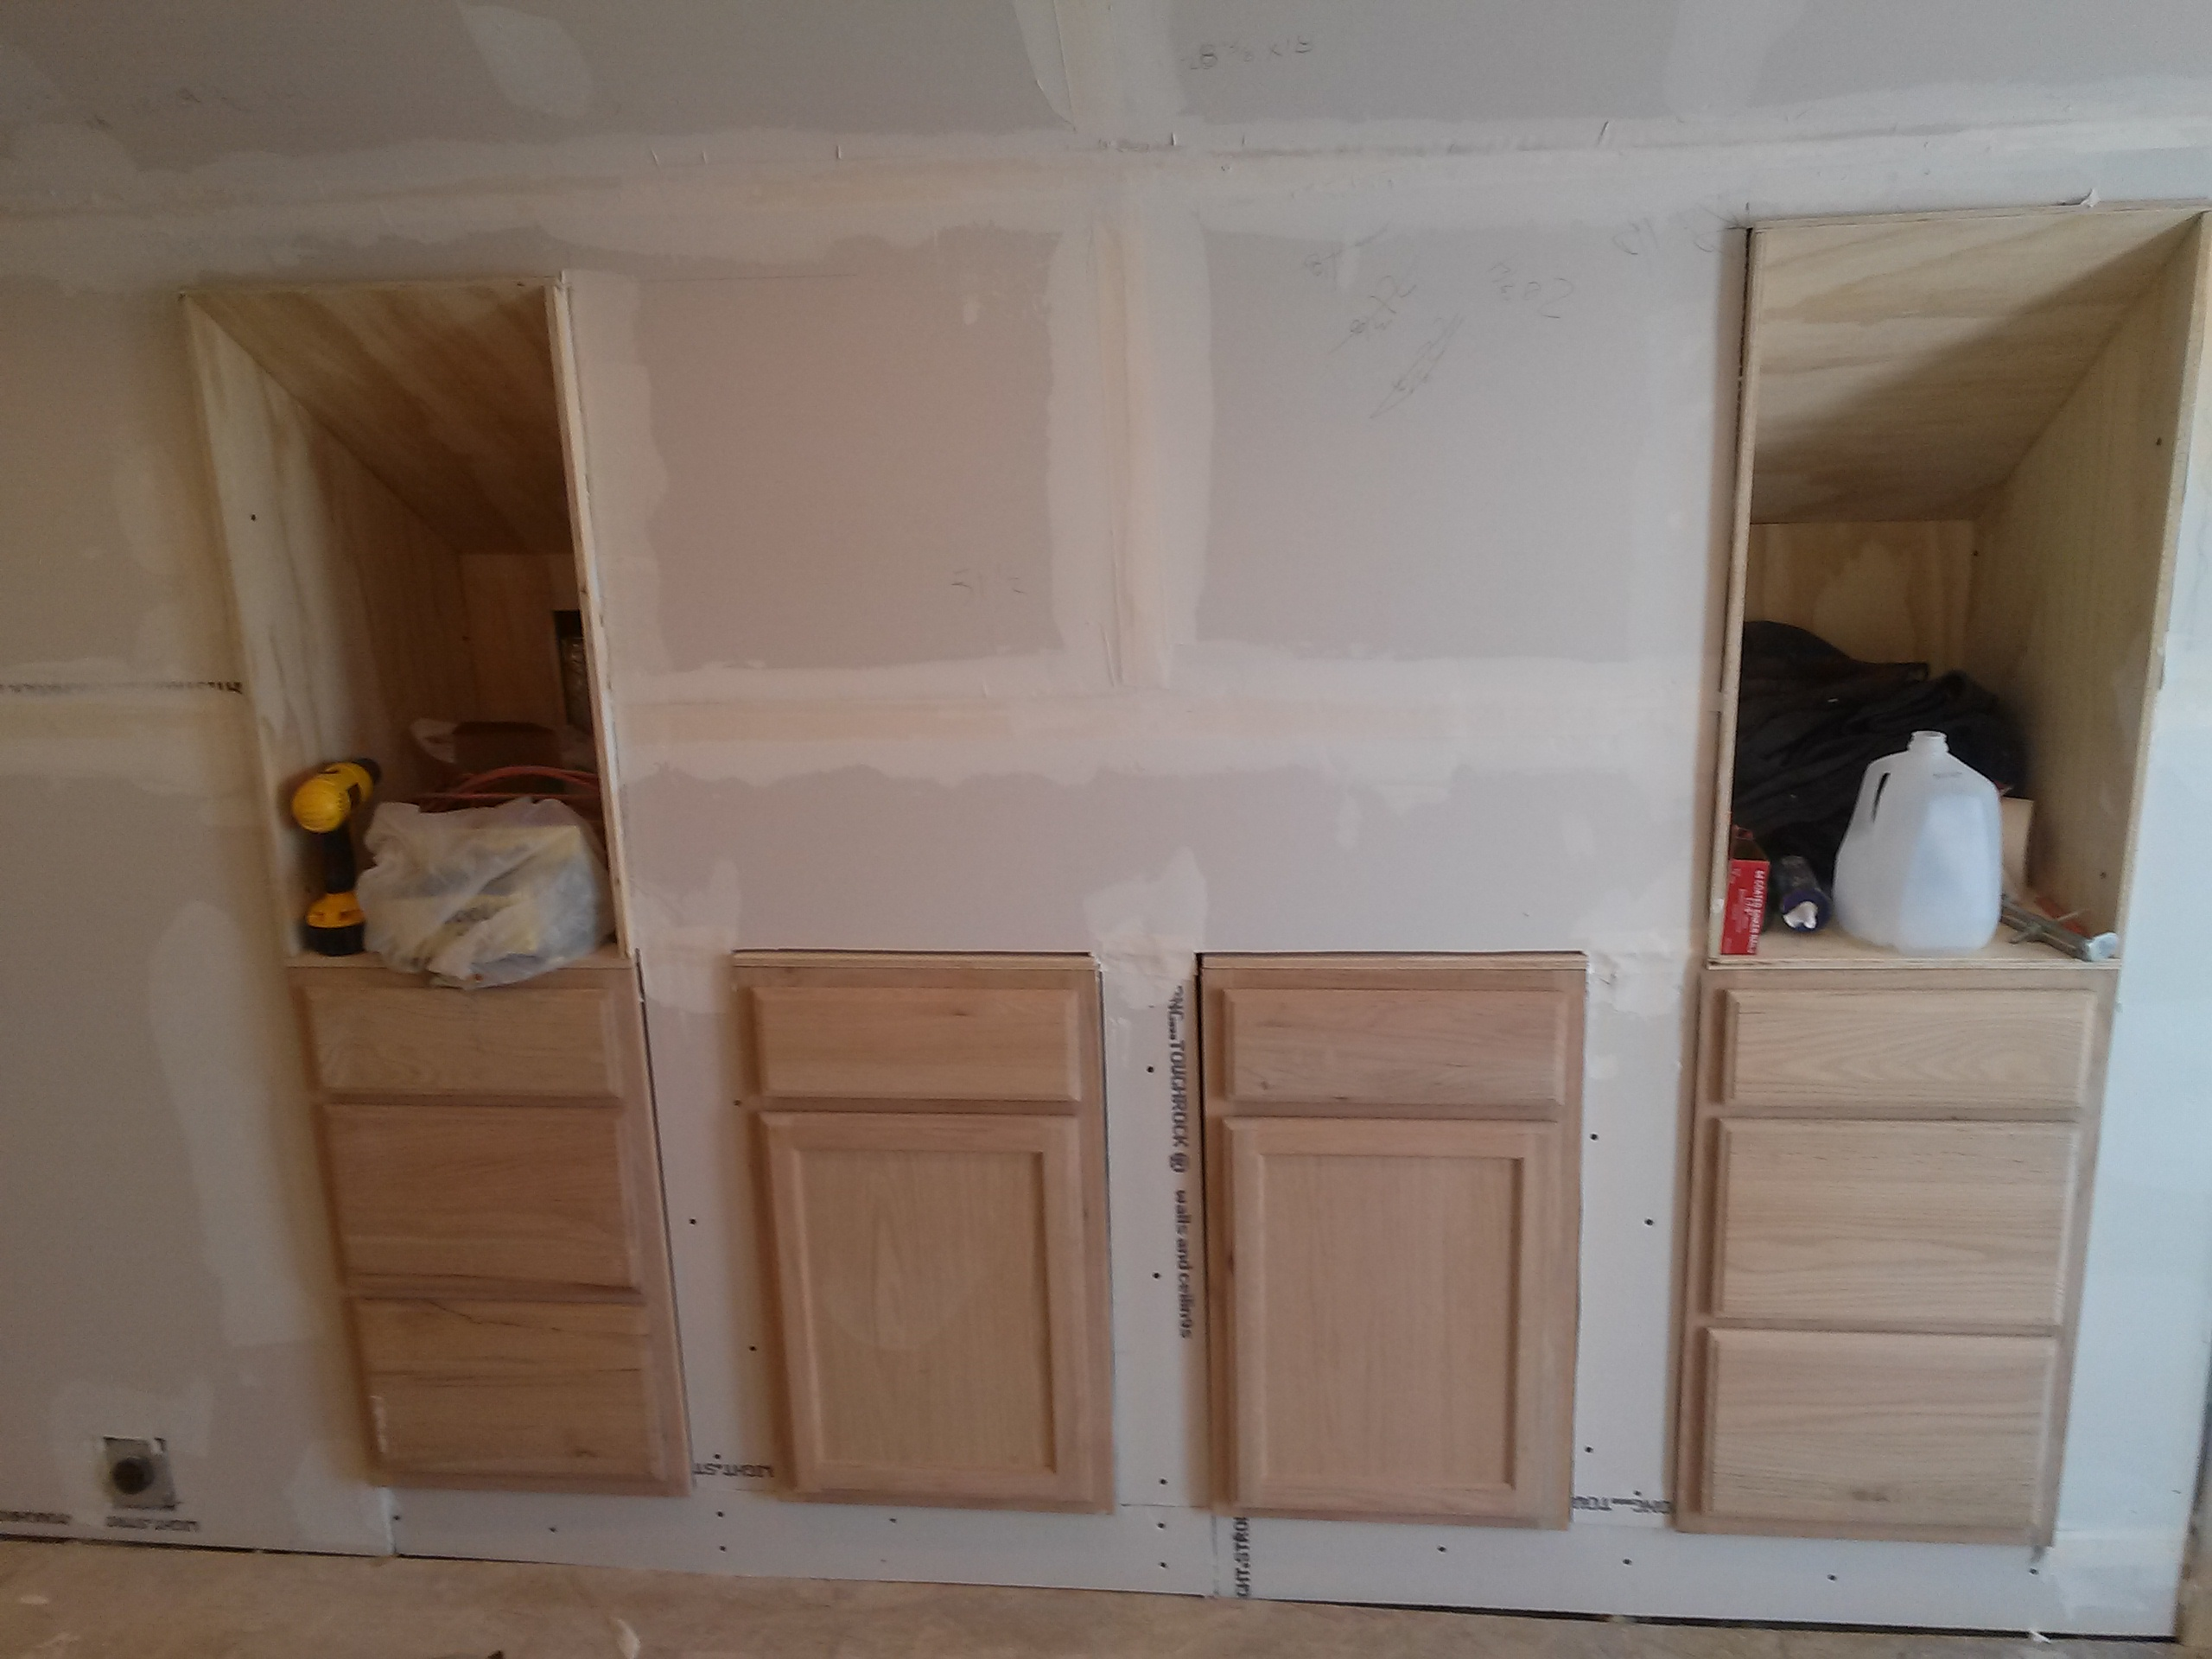 Cute You can see that the kitchen cabinets oven will start right next to the built ins as indicated by the outlet for the stove I can ut decide whether I want